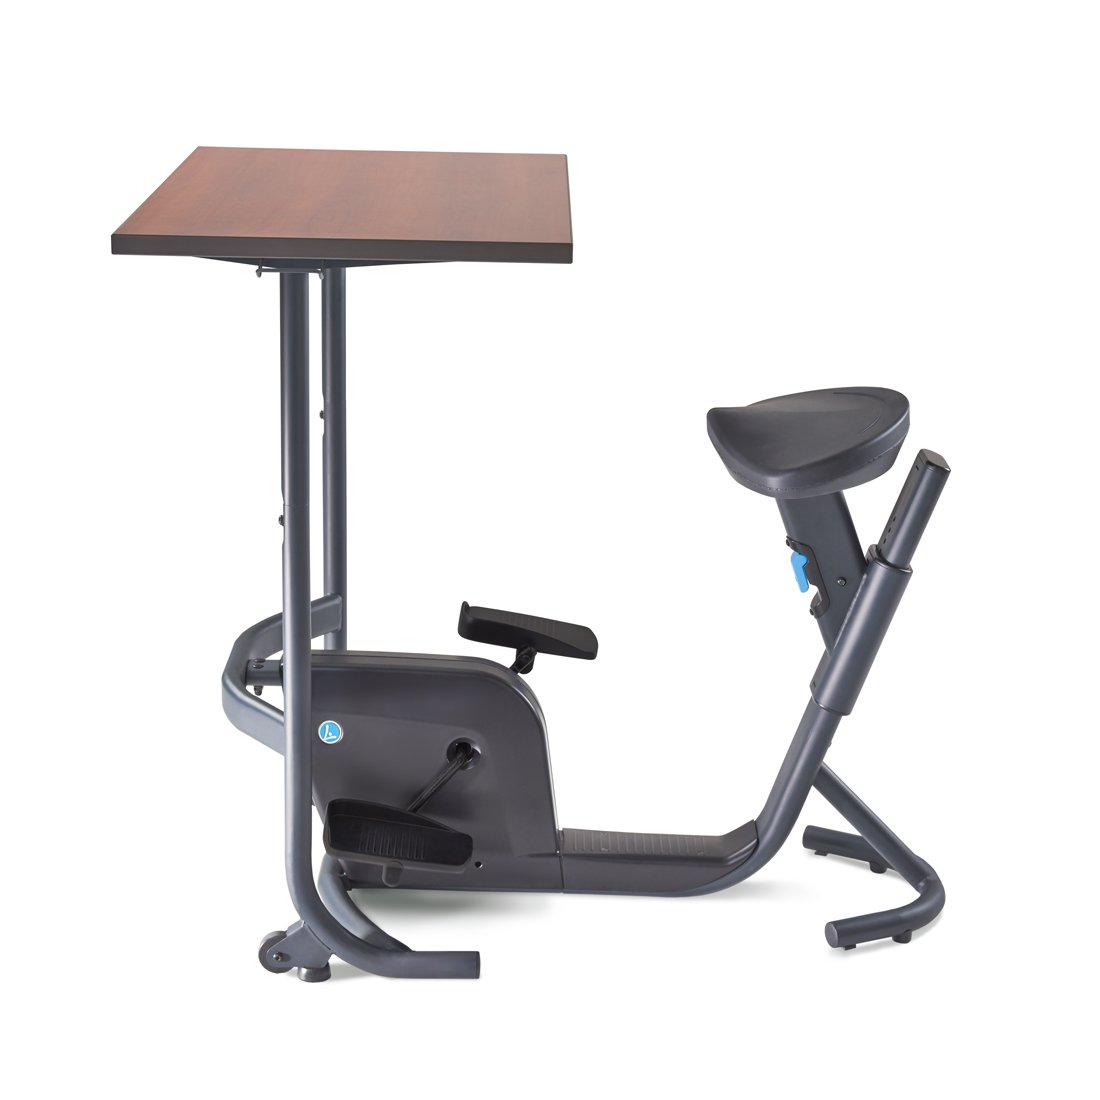 effective best get under your accessories insider in business exercise to ways desk workout at equipment